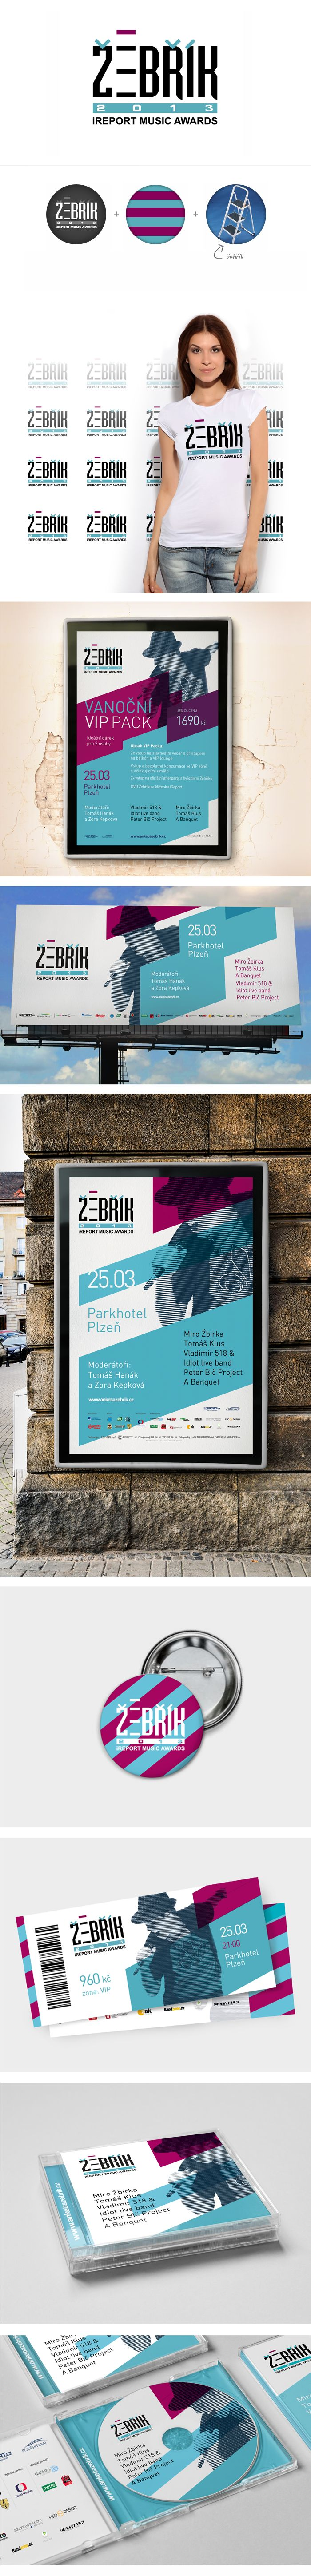 ZEBRIK music award